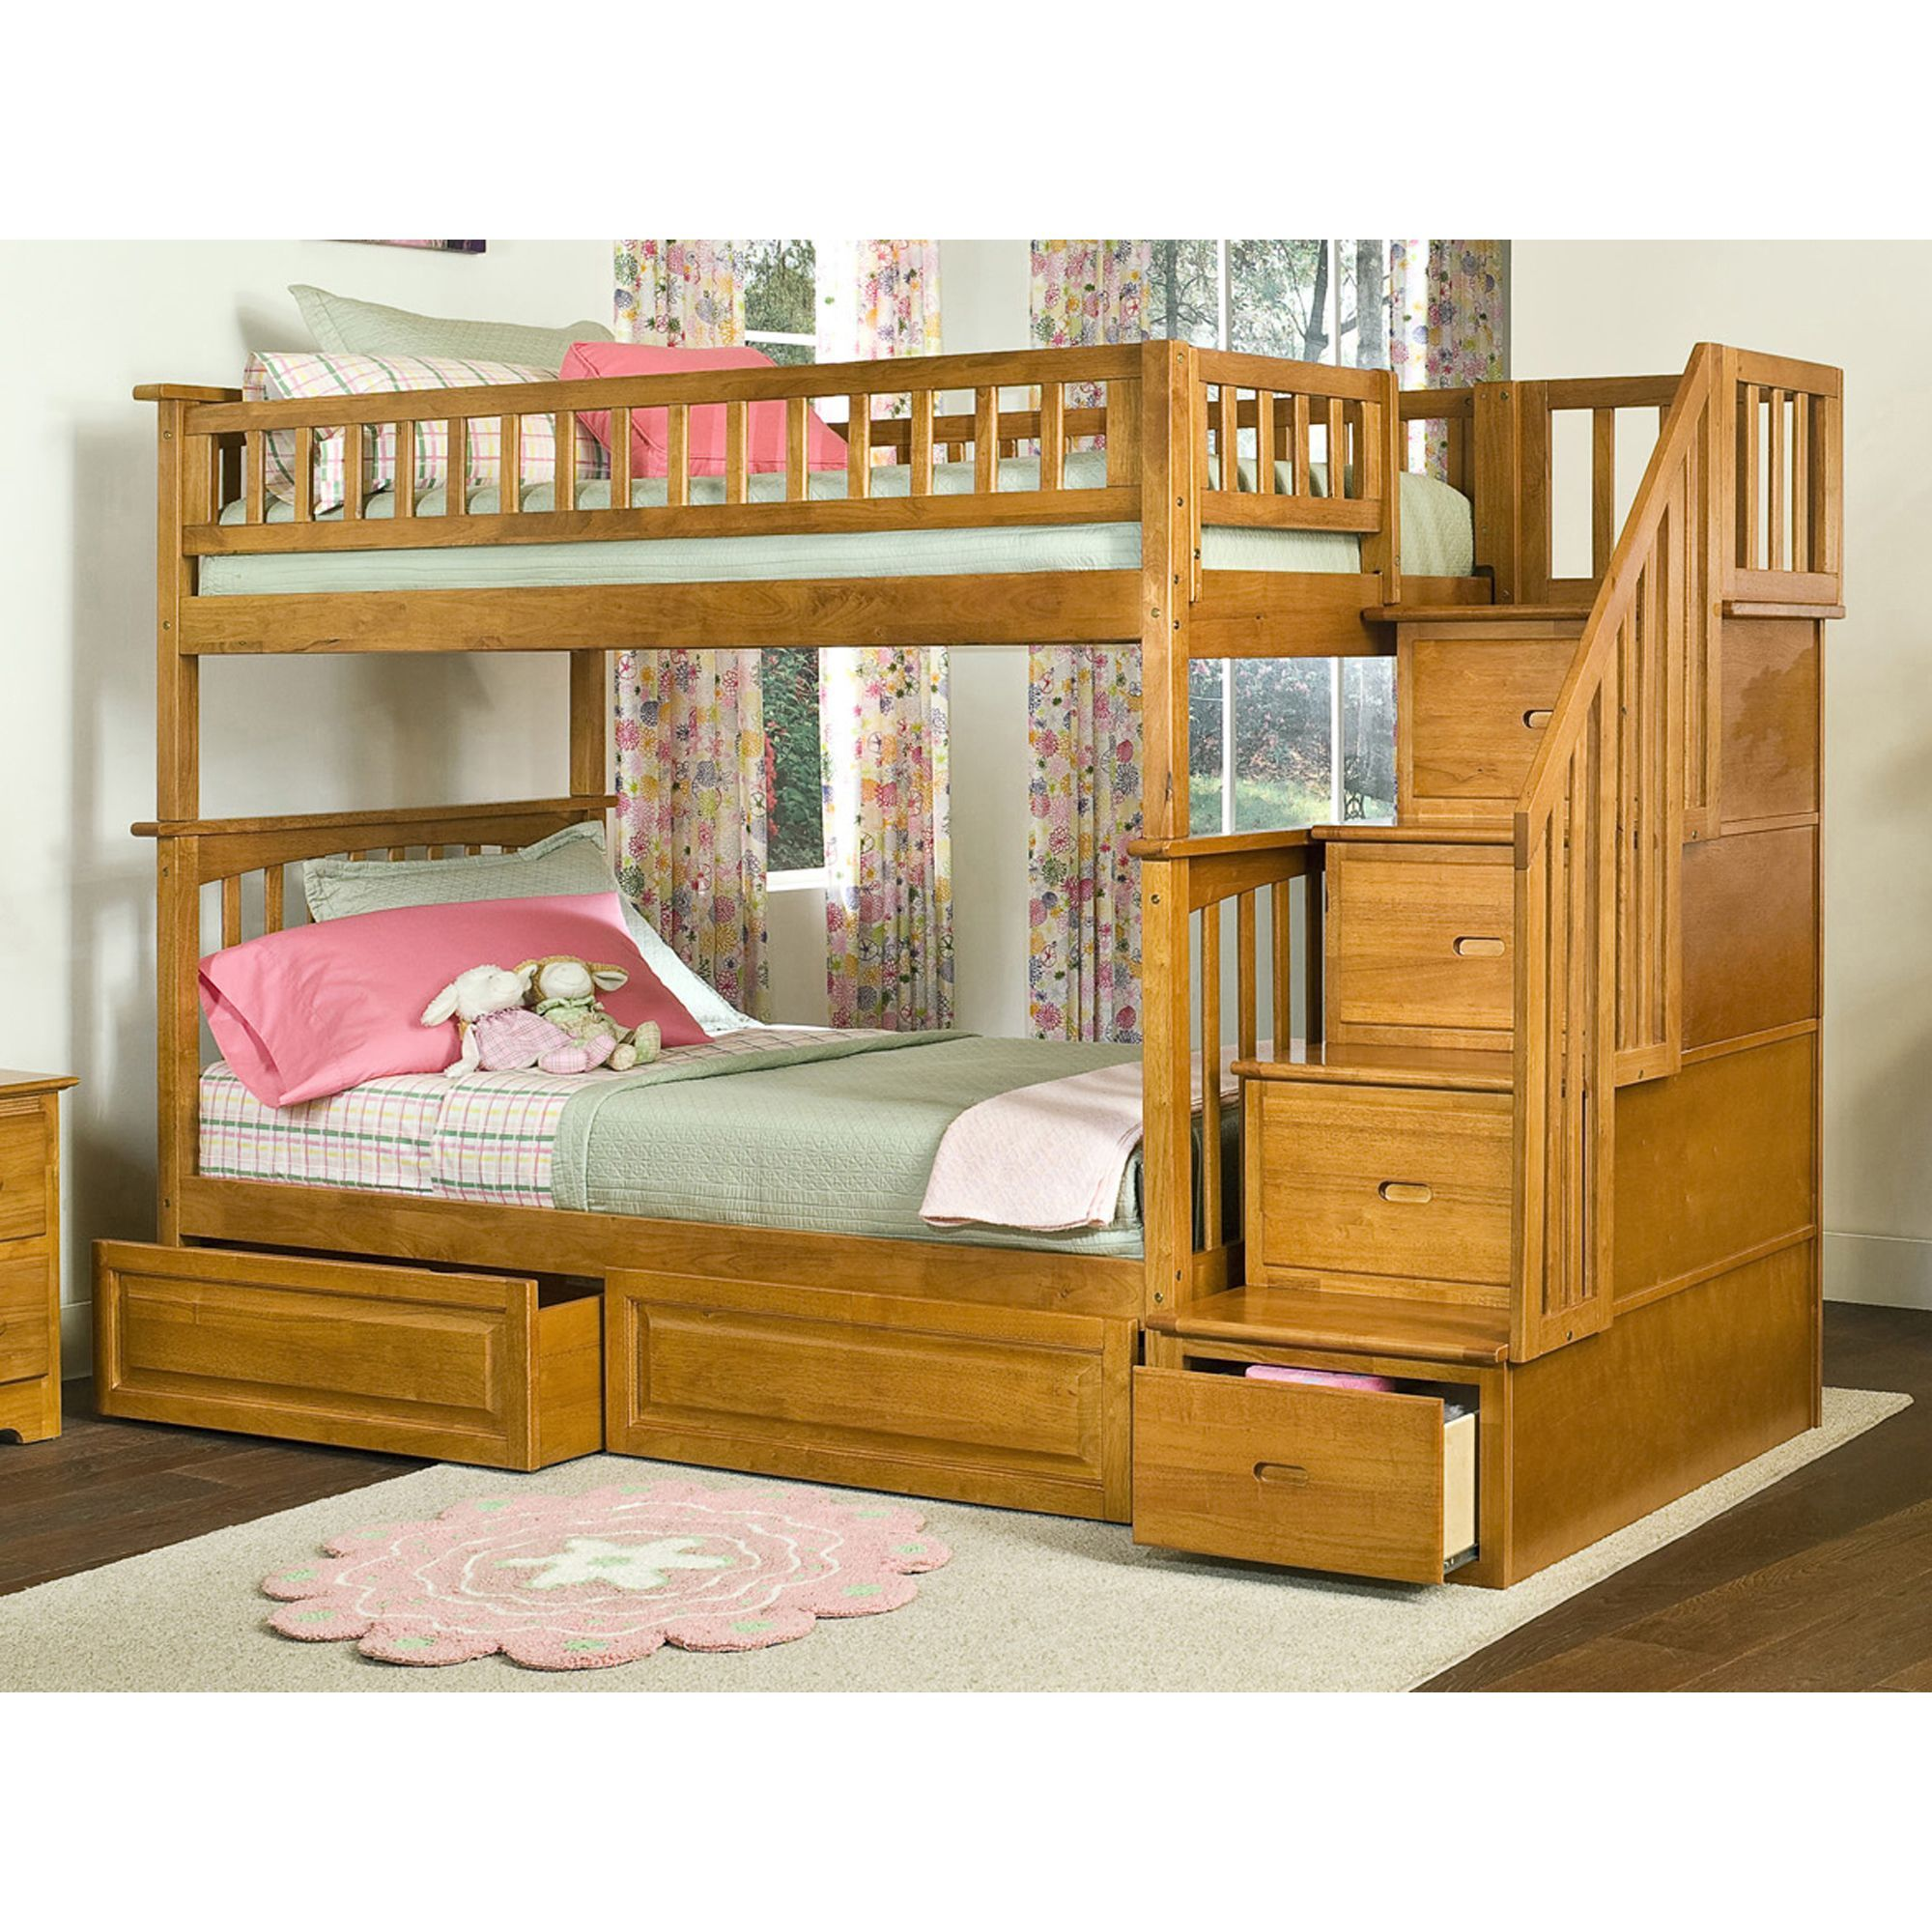 Atlantic Columbia Staircase Bunk Bed Over With Raised Panel Drawers In Caramel Latte